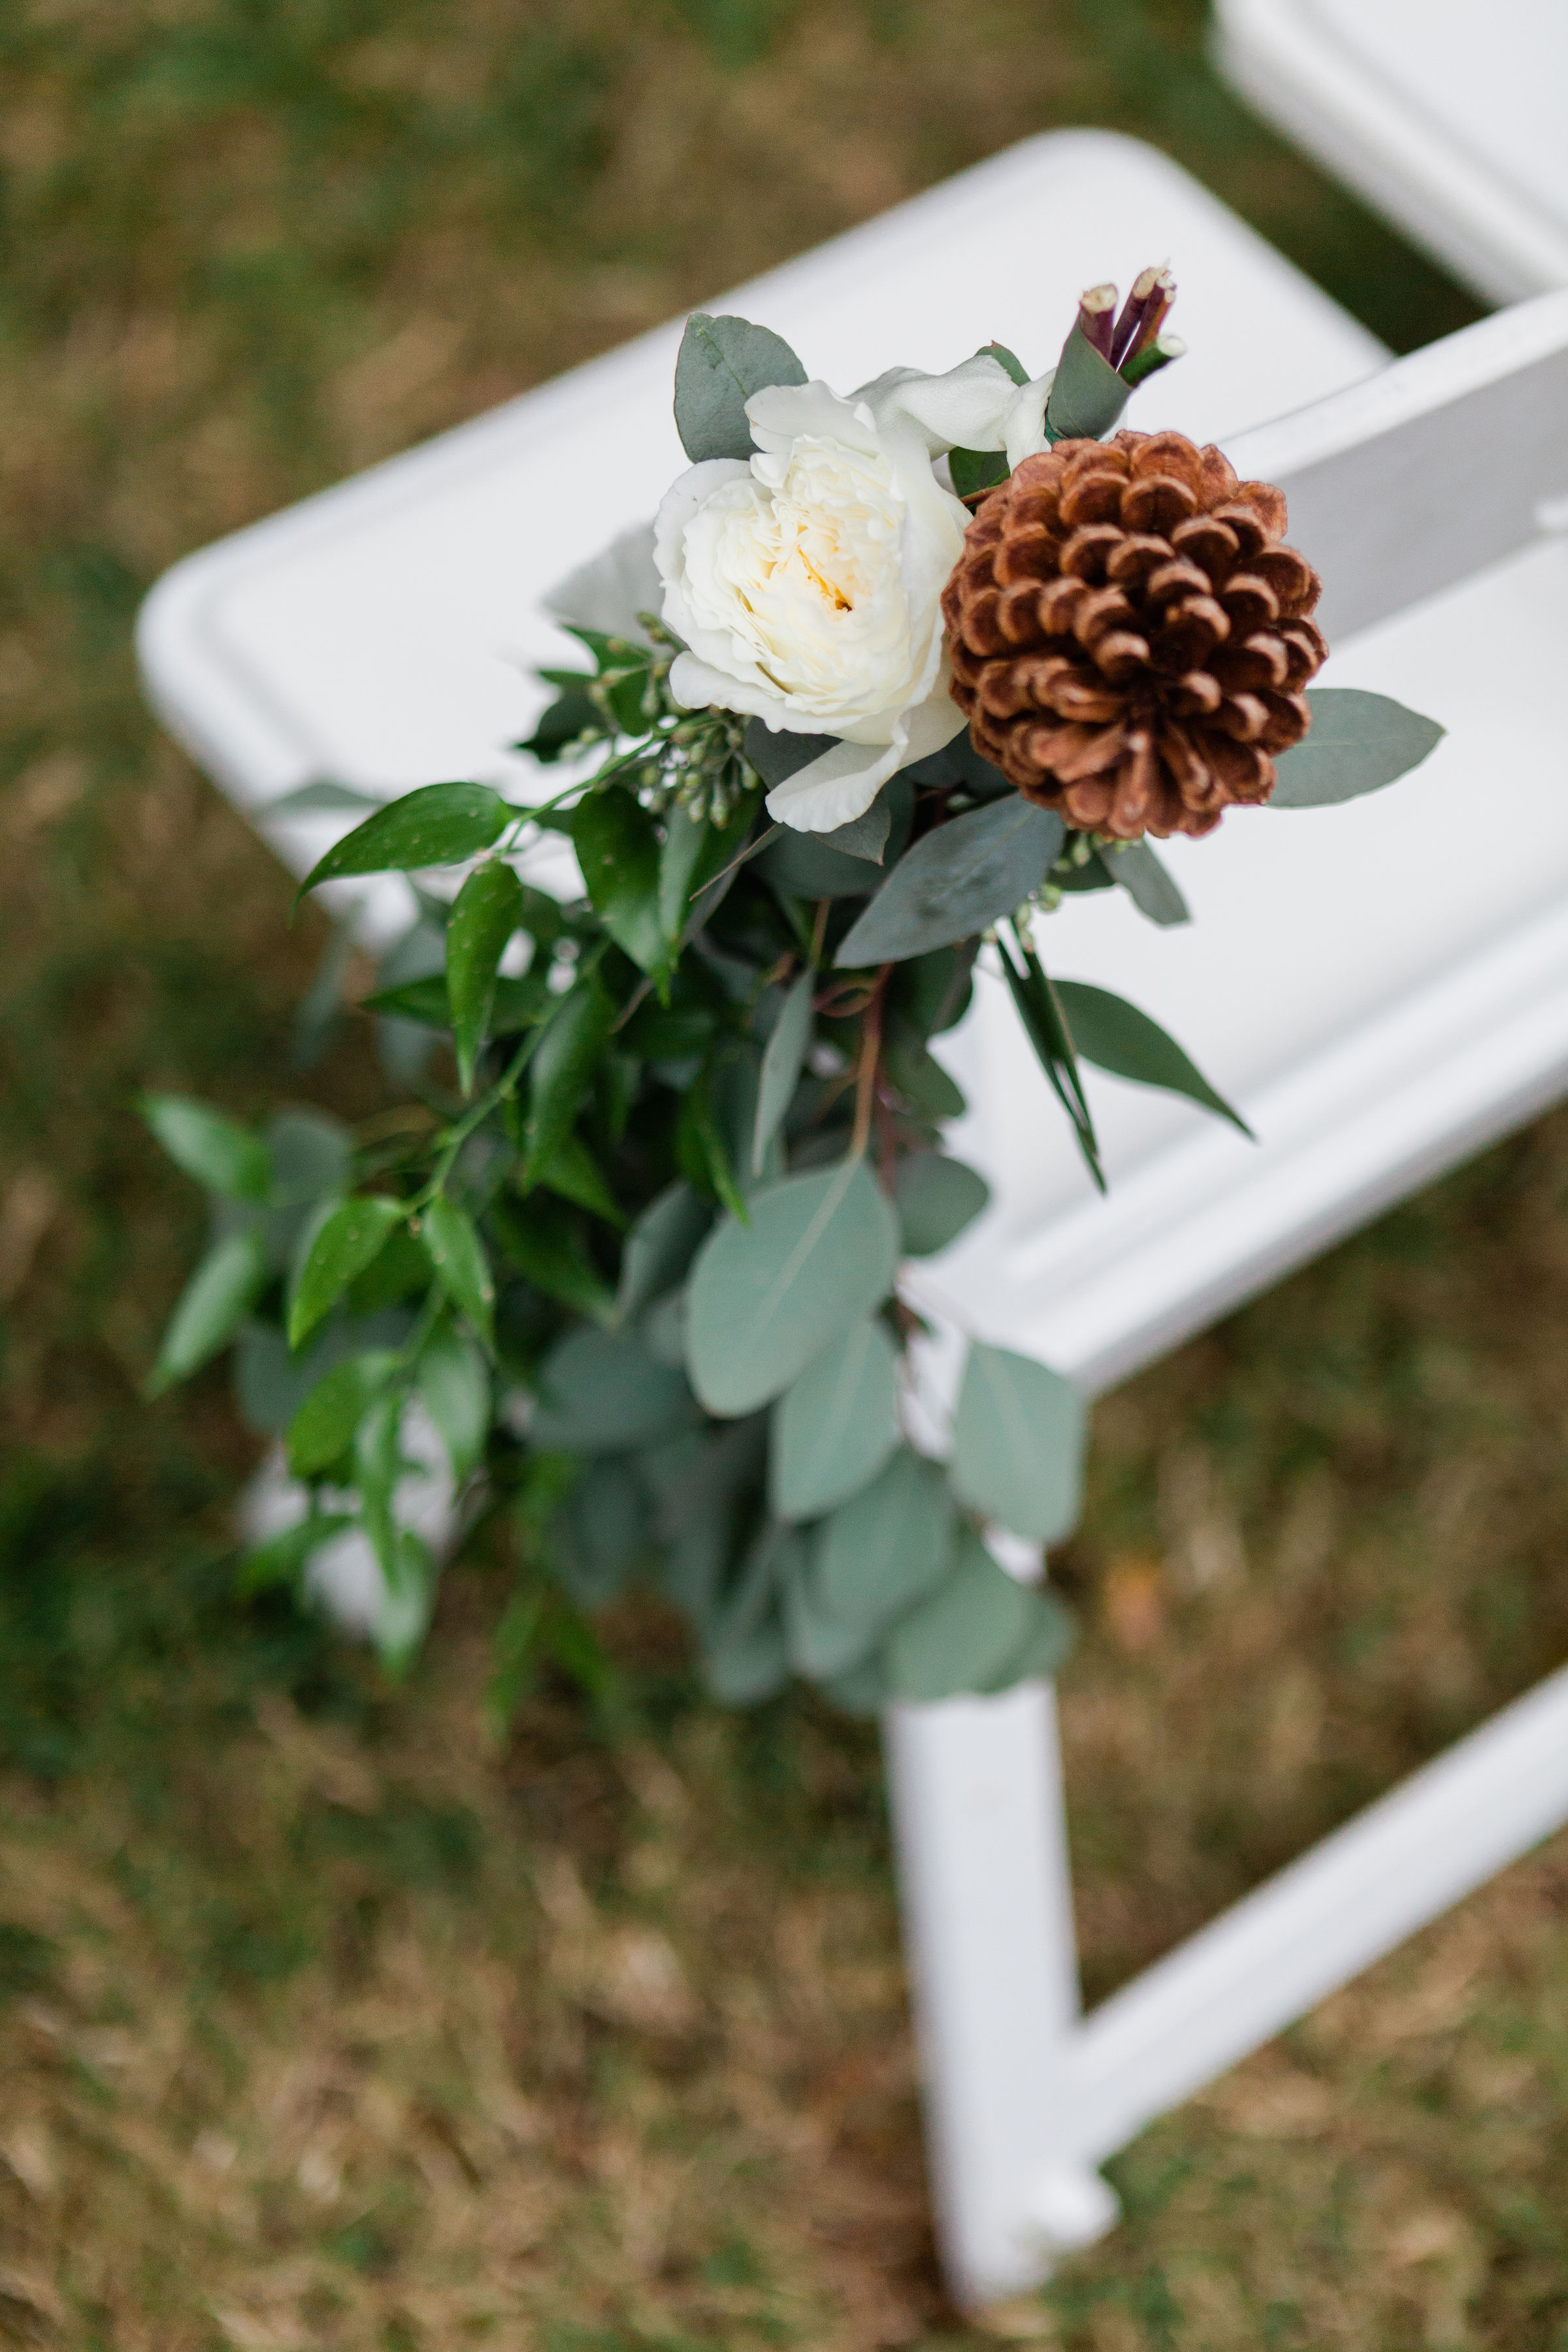 Gorgeous burgundy and white roses came together to create Rebecca's cascading bouquet. The bride and groom exchanged vows with a lush, green backdrop, layered with soft linens, while rosemary and sugar pine cones detailed the aisle decor and dinner table centerpieces. #floraldesign #weddingflorals #weddingflowers #virginiawedding #virginiabride #virginiaflorist